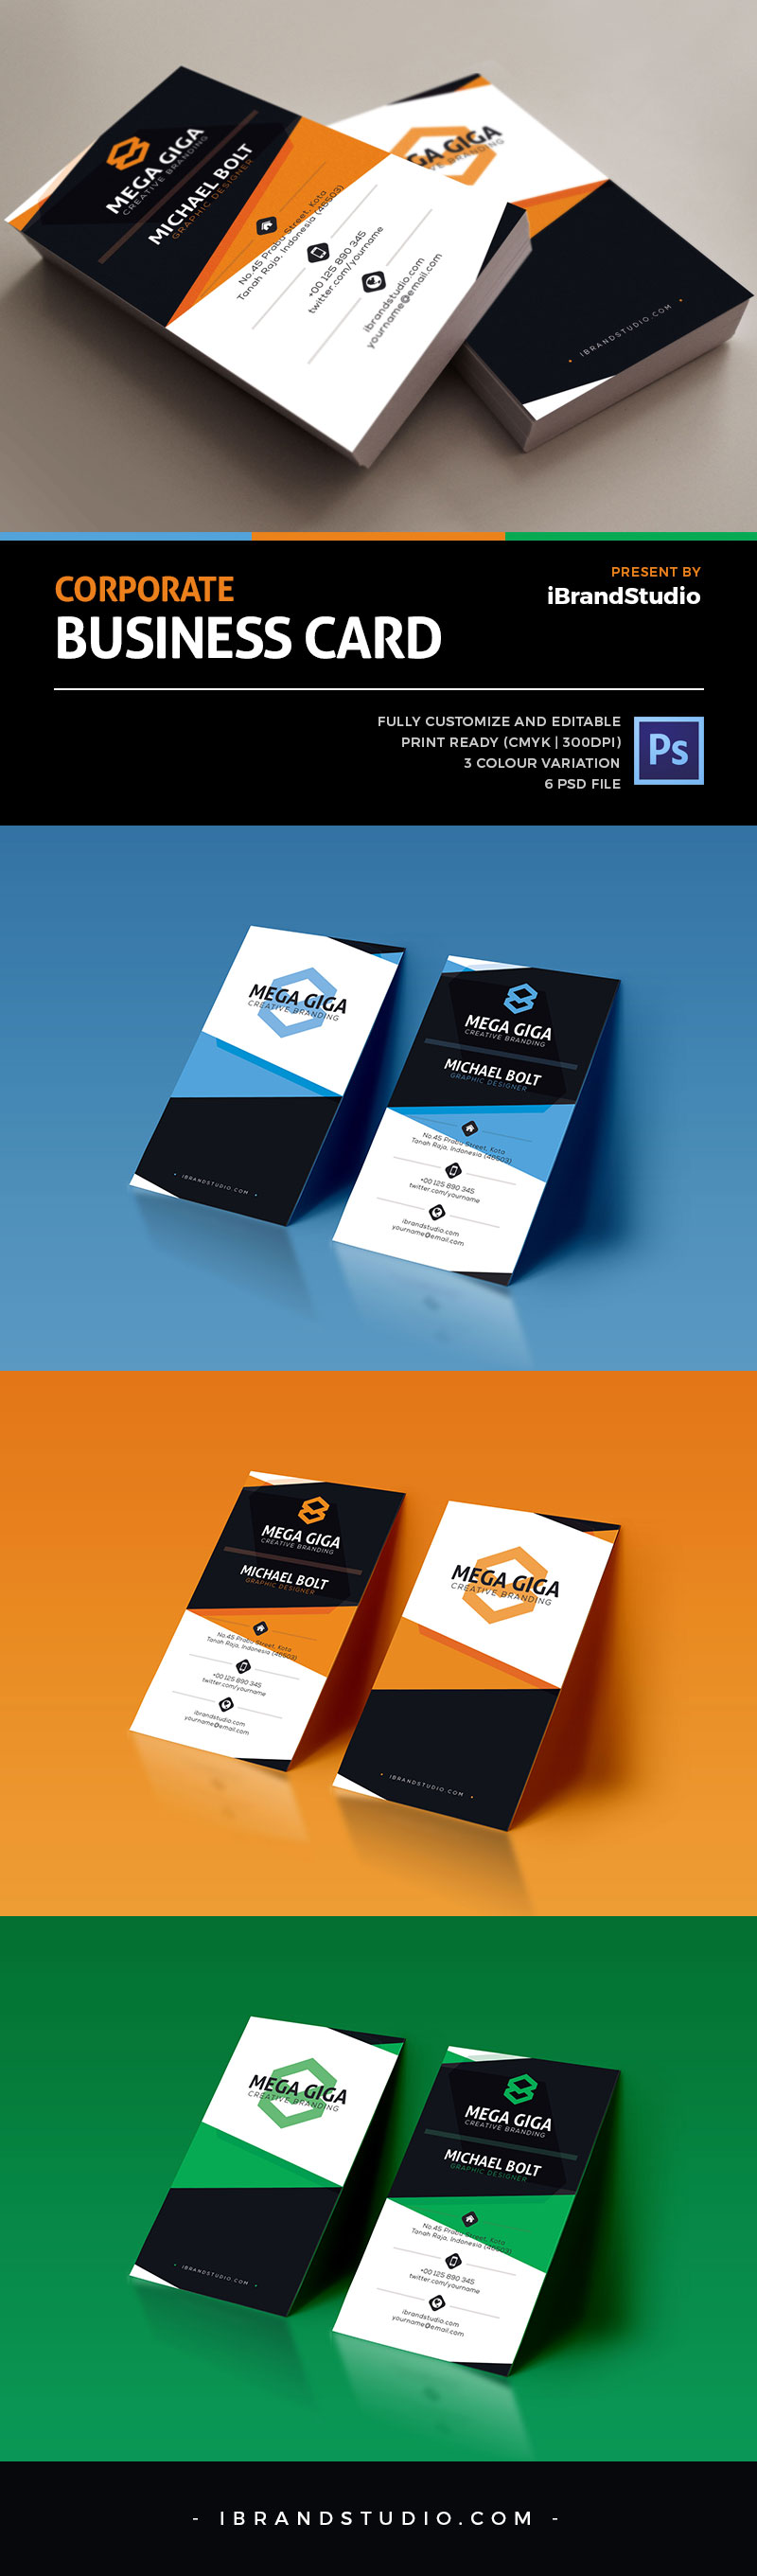 Free modern corporate business card template psd for Free modern business card templates